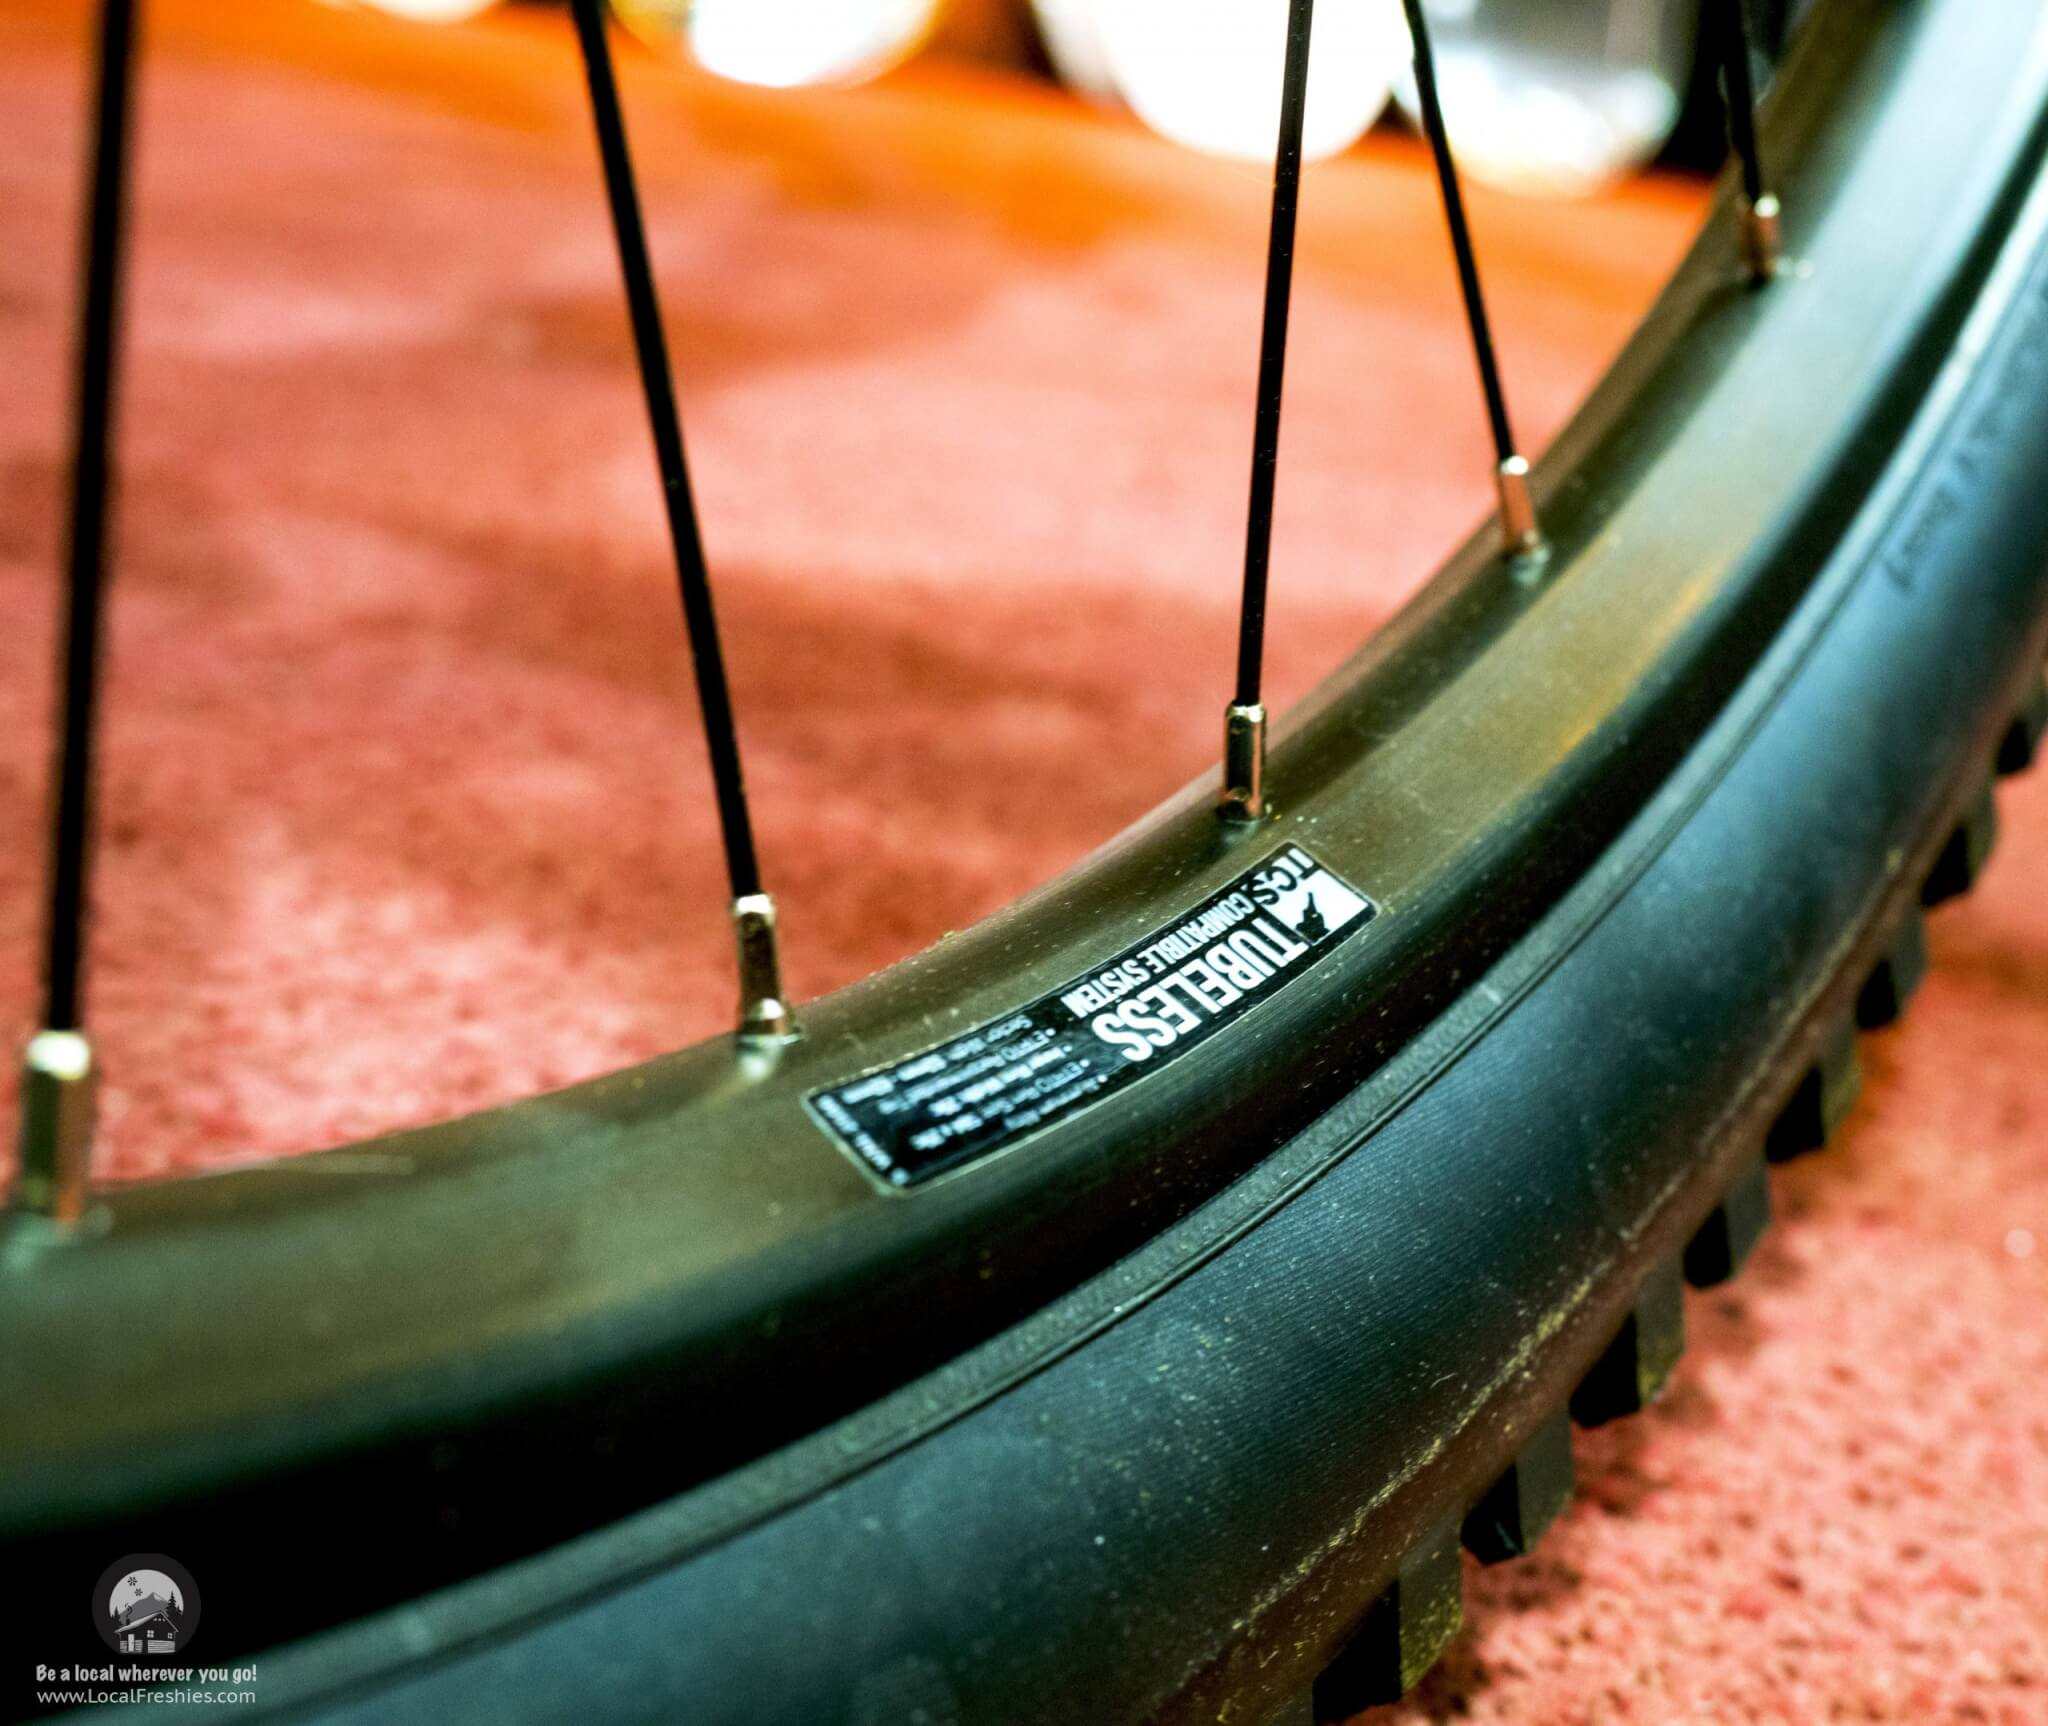 label on a rim of a tubeless mountain bike tires